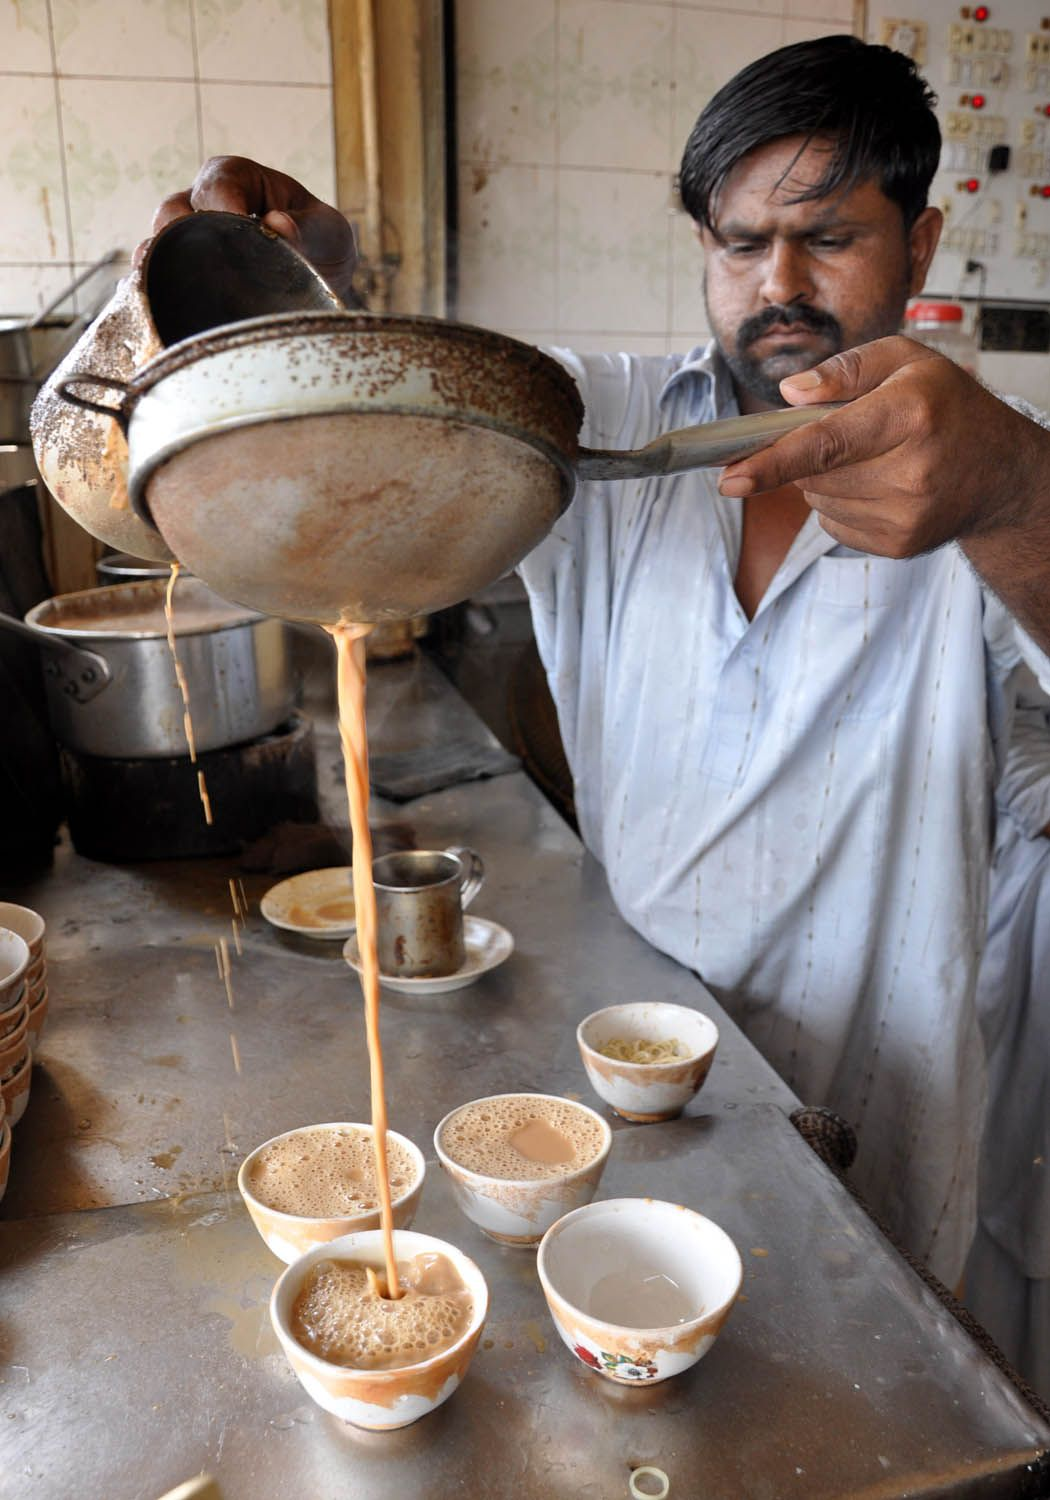 Chaaning the chai to get the froth | Indian tea, Street food, Tea culture